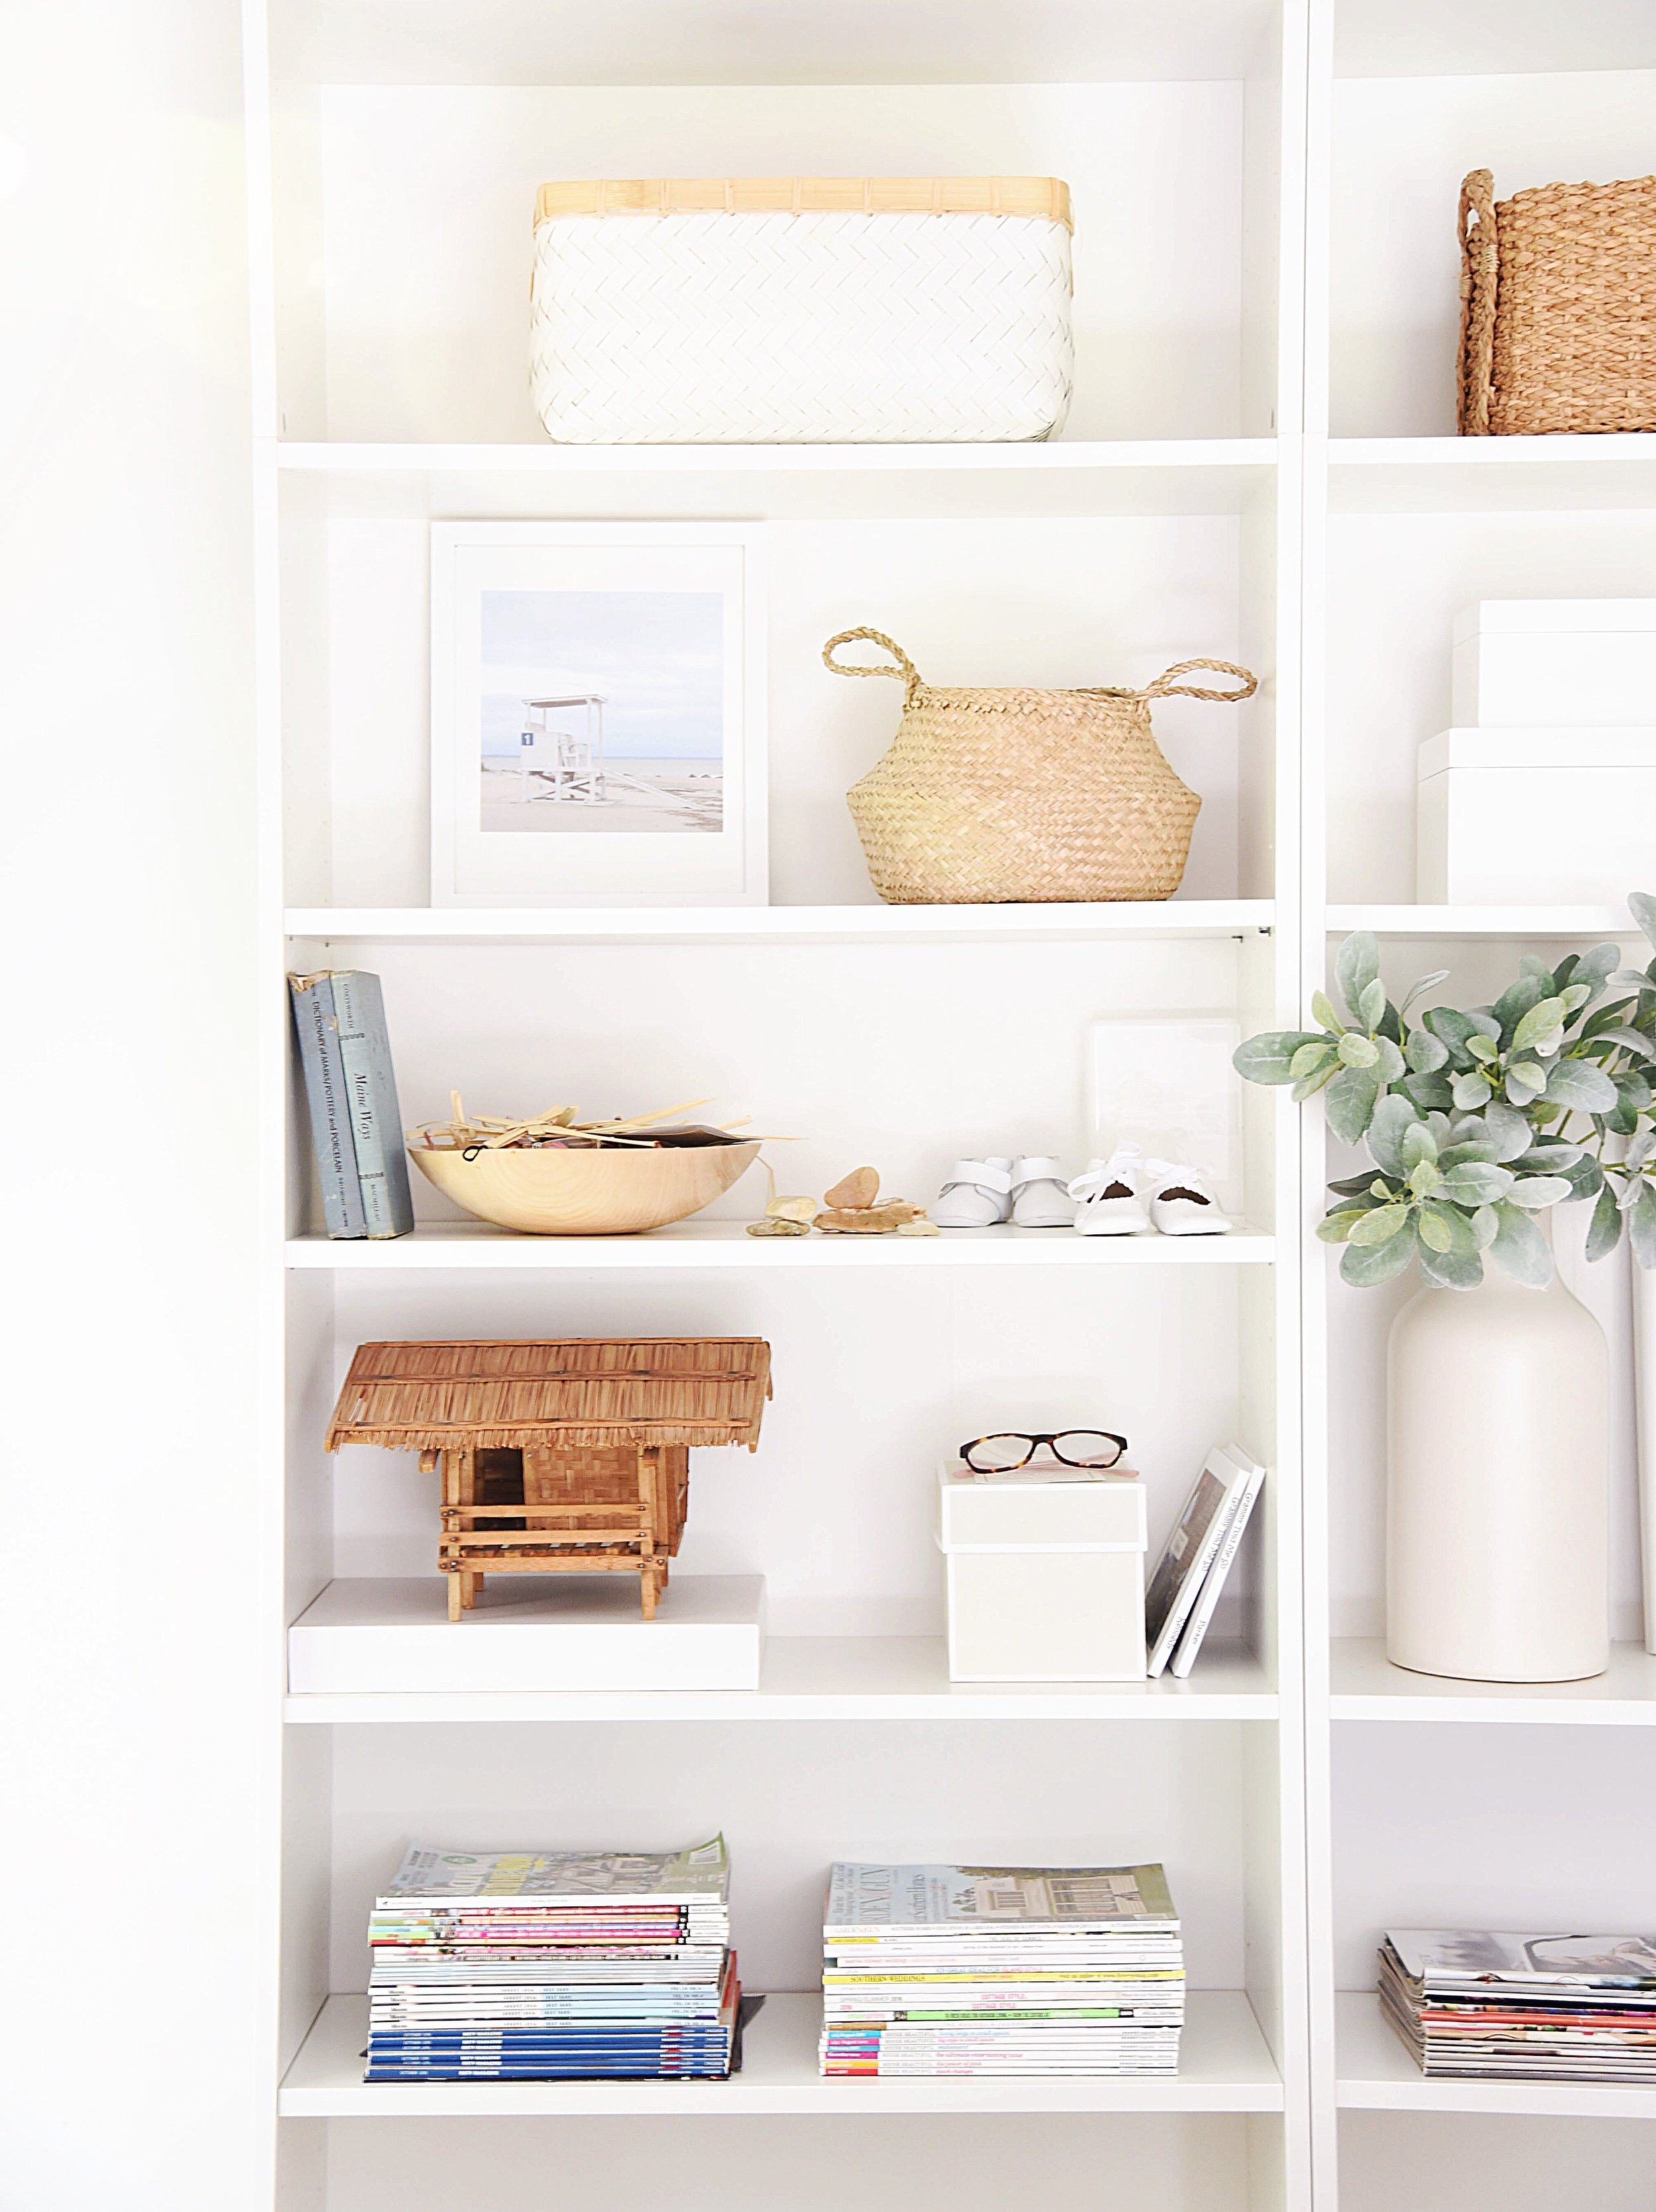 bookshelf styling | 11 tips & tricks for what to display and how to style it by @michellecannonsmith